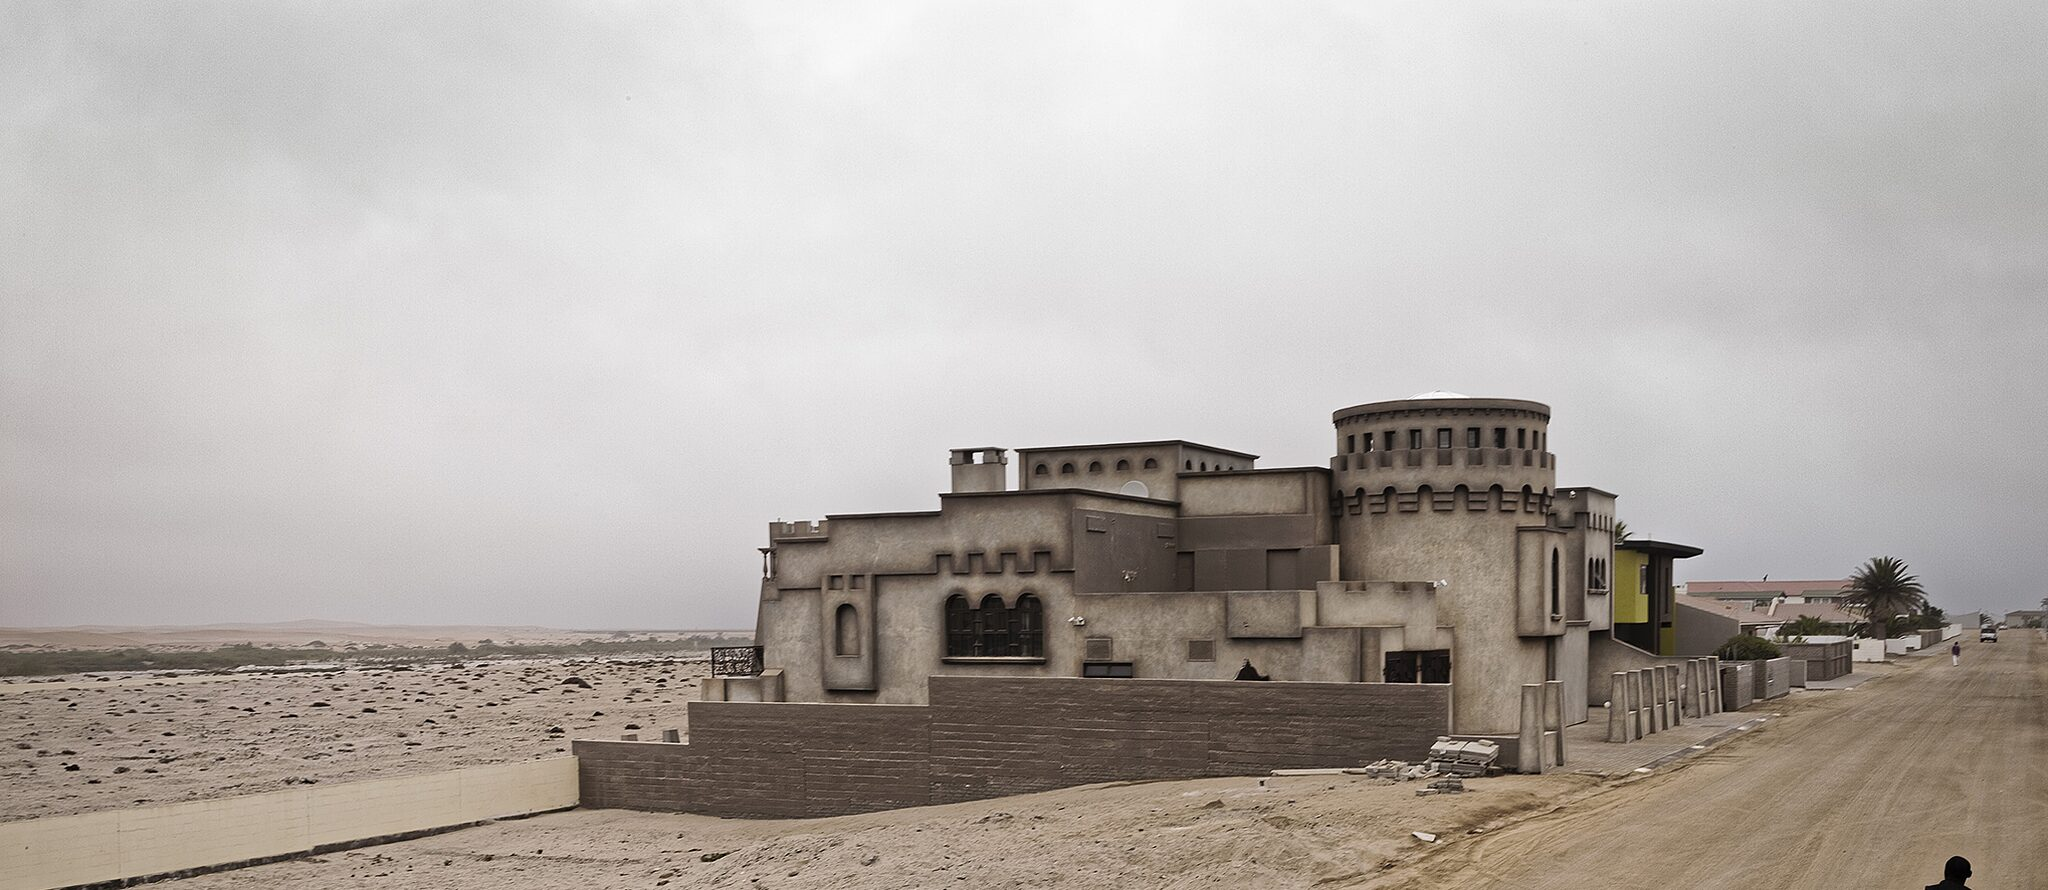 """Next to the Graves"": A private residence in Riverside Road, Swakopmund, built directly next to unidentified graves of Herero and Nama prisoners-of-war who died during the German-Namibian War and Genocide (1904-1908)."